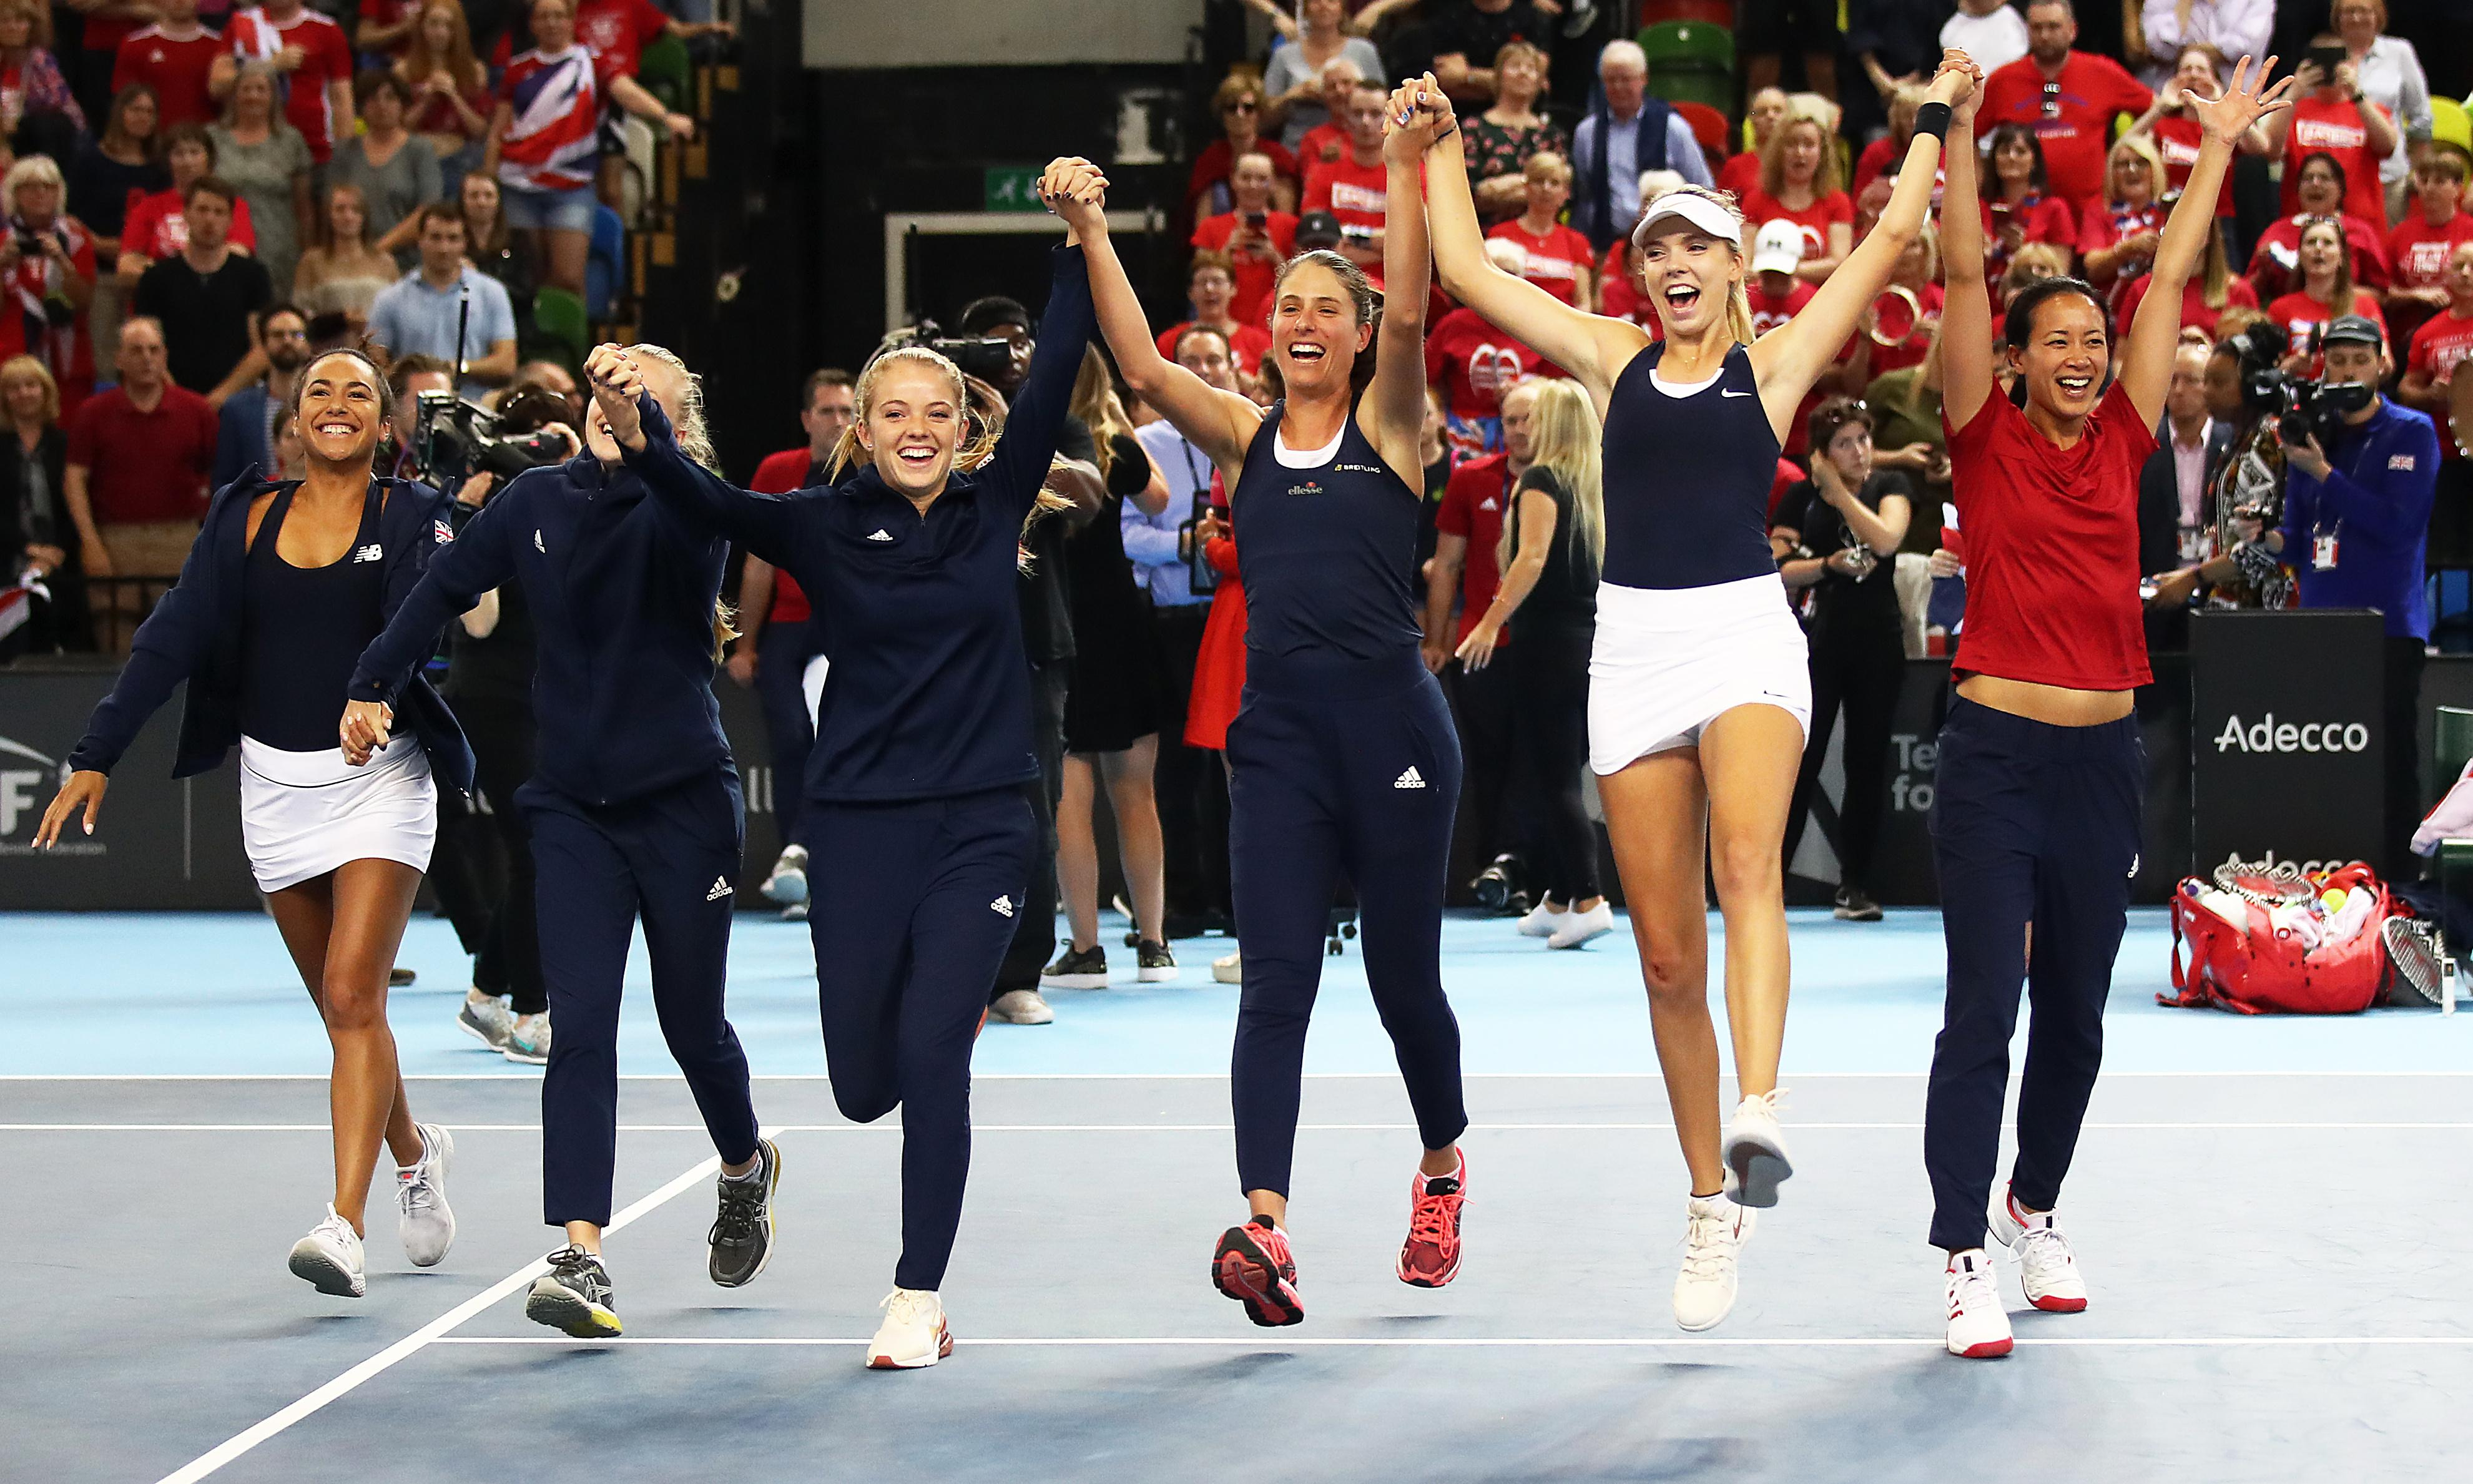 Johanna Konta and Katie Boulter end GB's 26-year wait for Fed Cup promotion